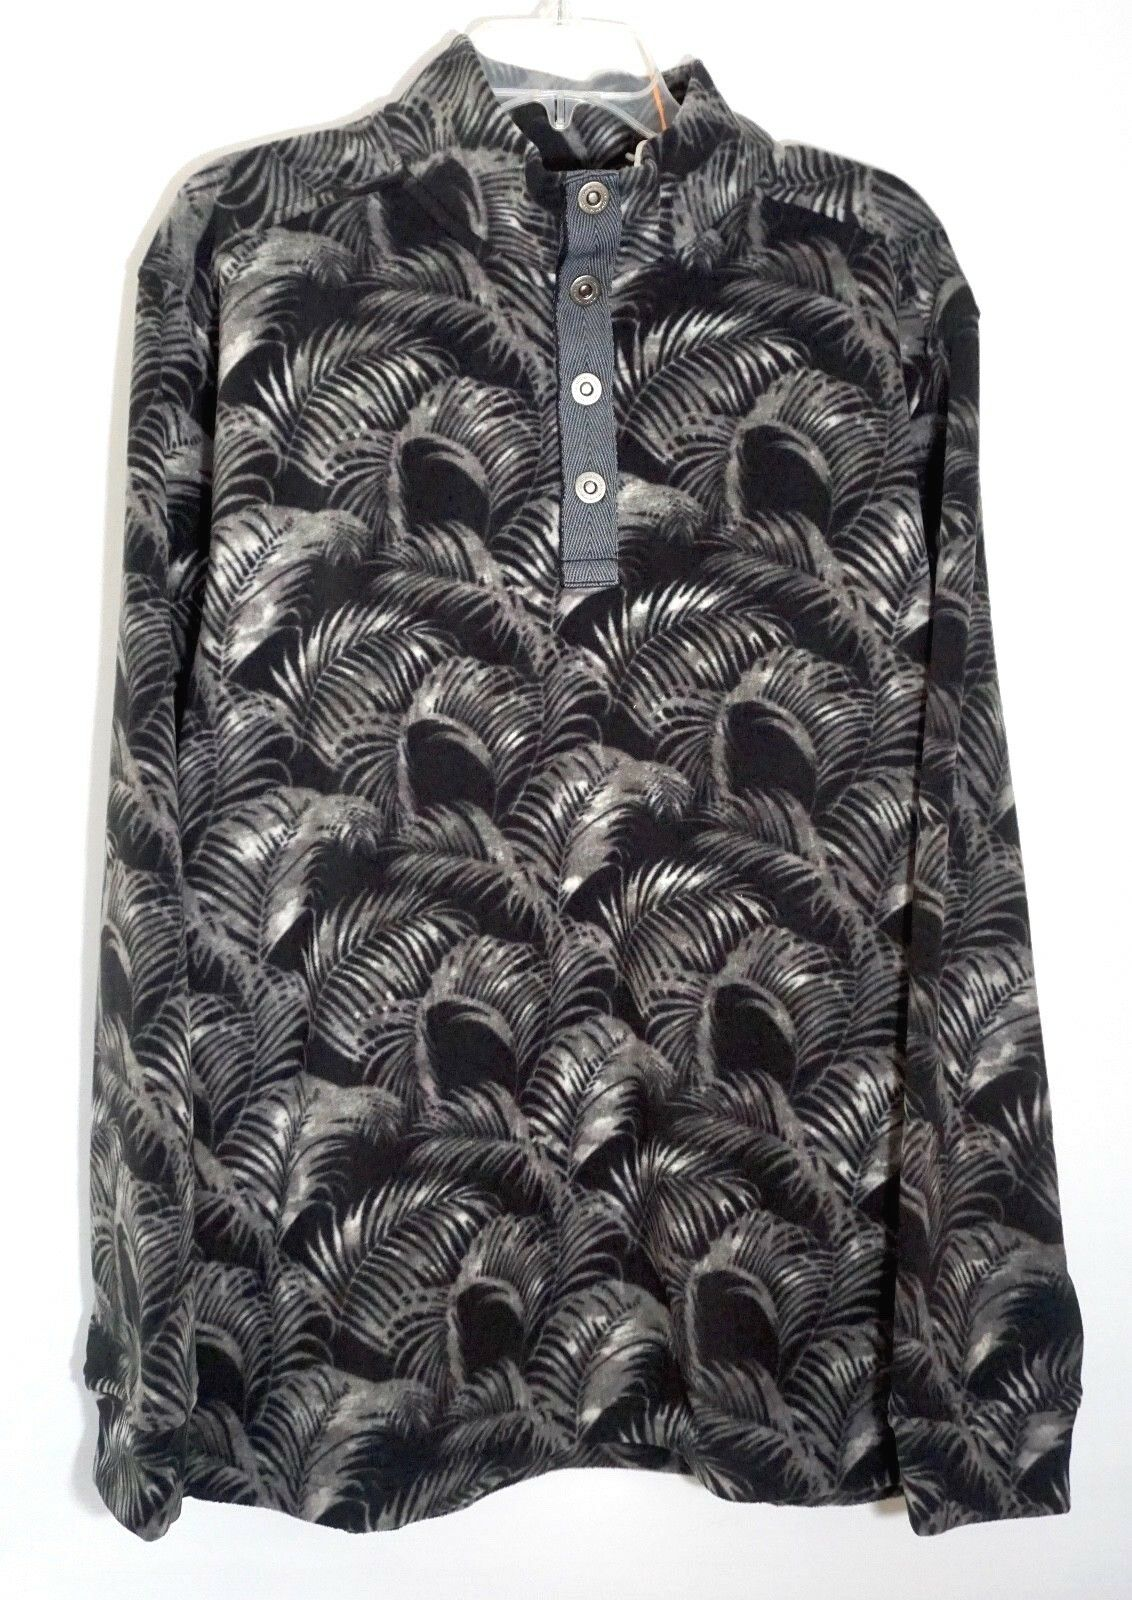 NEW Tommy Bahama Mens Fleece Pullover Sz XL Black Gray Fez Fronds Snap Mock $115